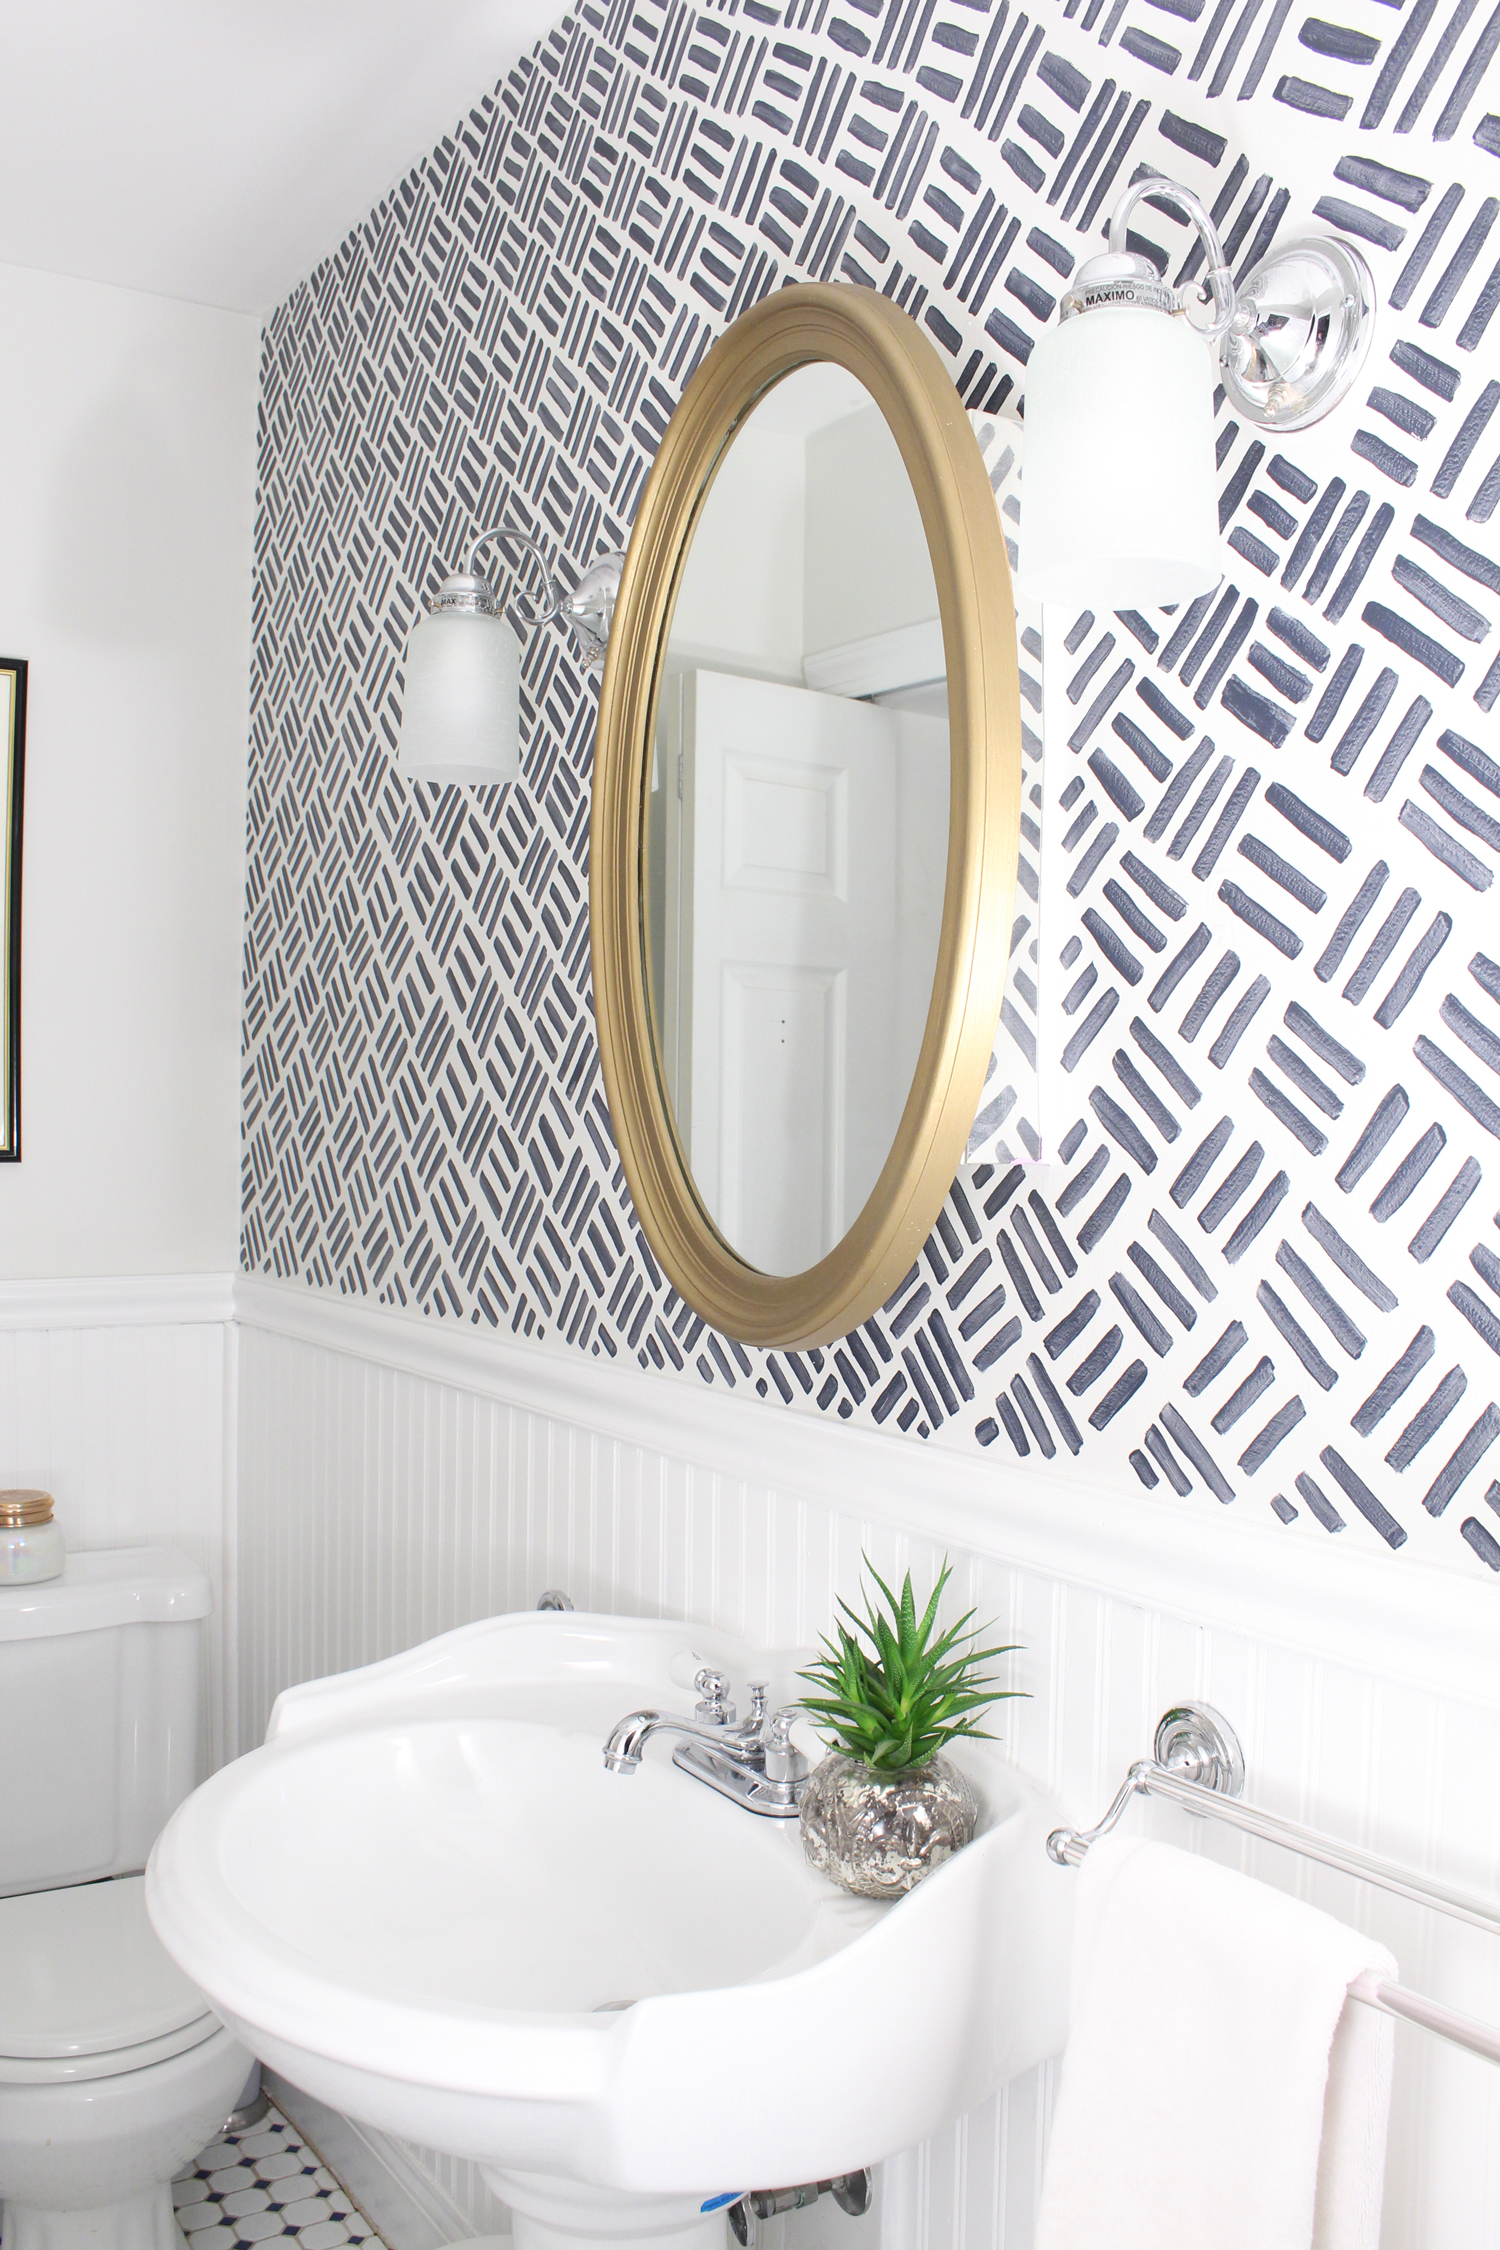 A 1930s row home in Philadelphia gets a big makeover. A purple bathroom got a hand-painted wall treatment with a blue hash pattern. Come see the before and after!